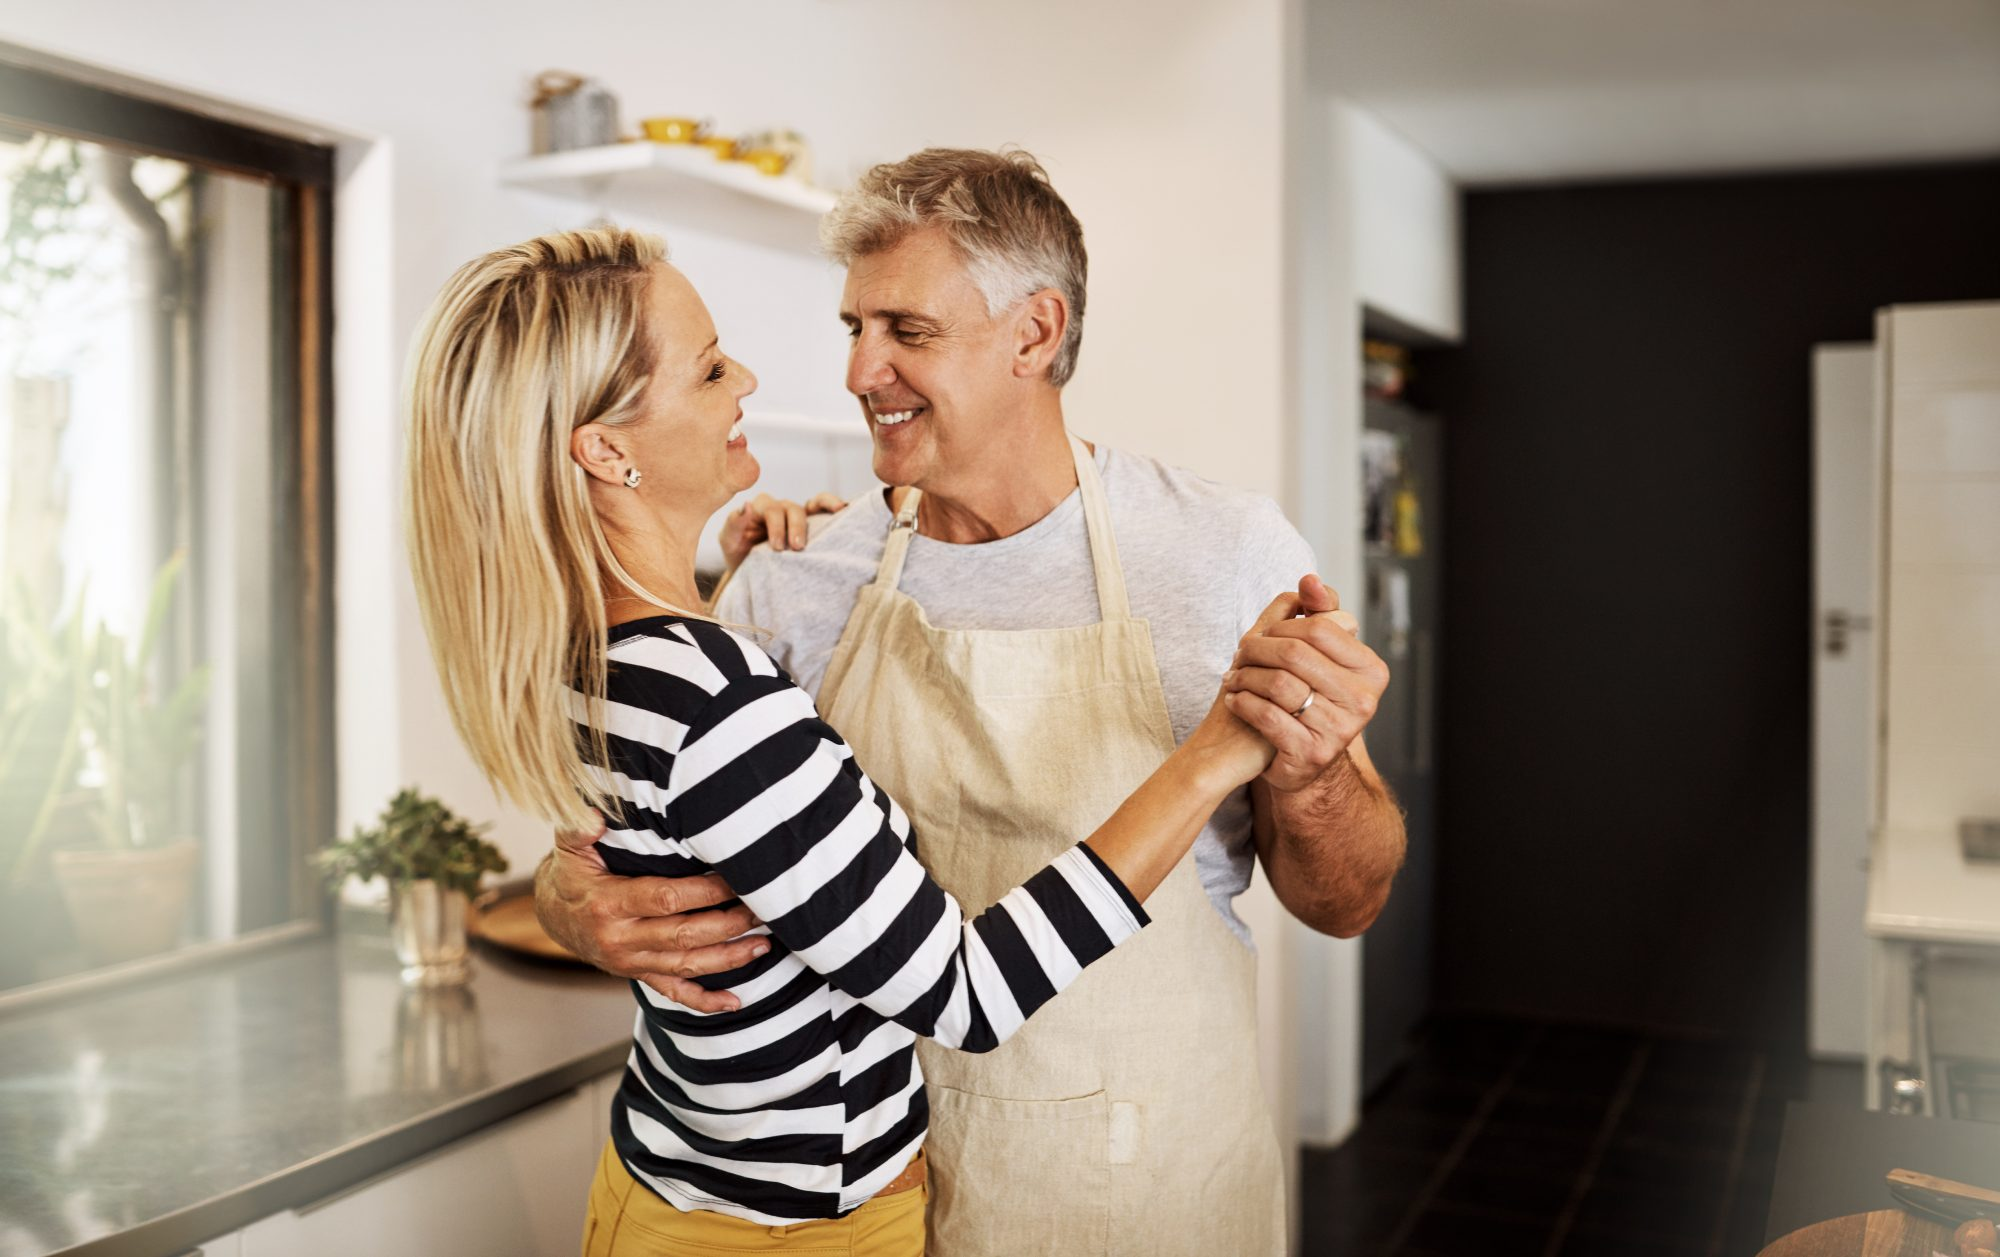 Middle aged man and woman holding hands while dancing in the newly remodeled kitchen.